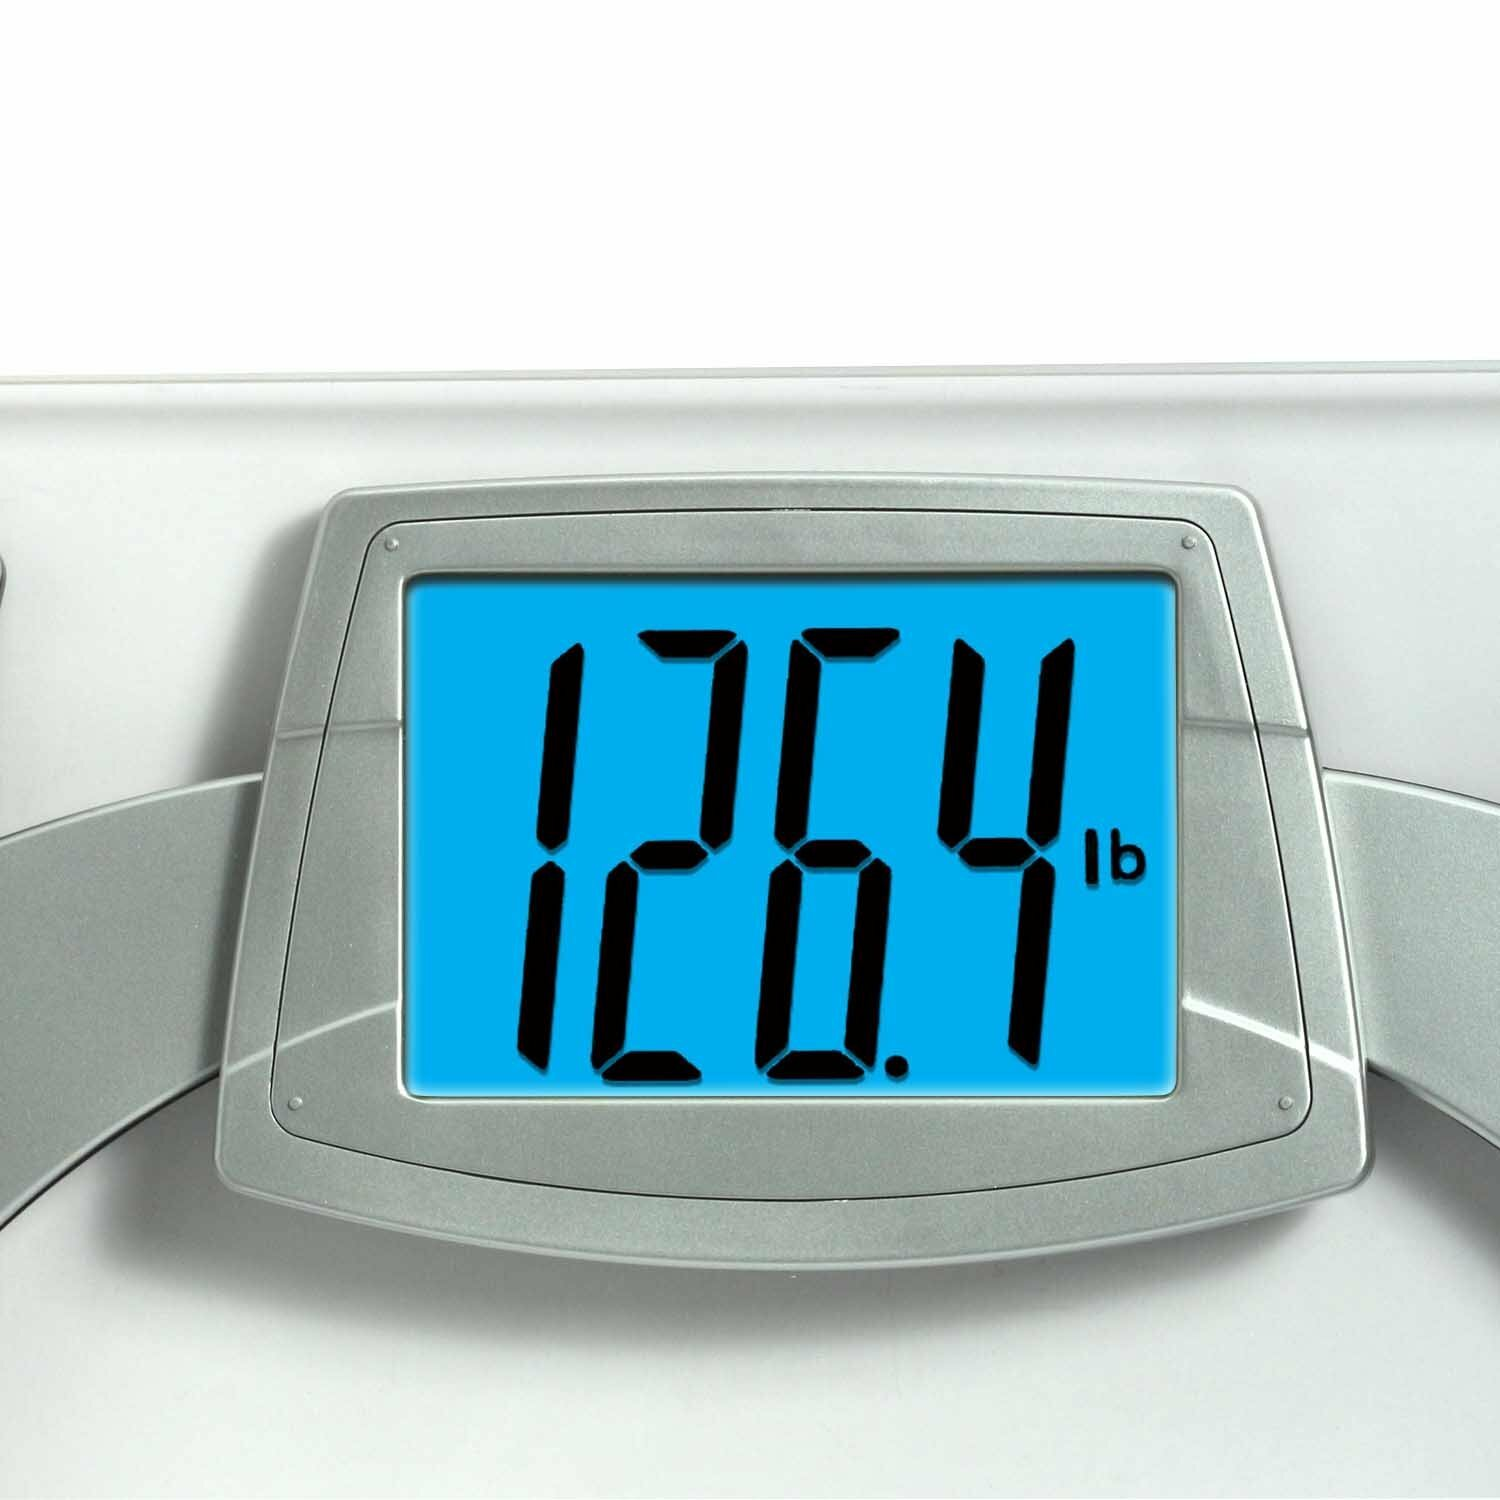 Bathroom Scale Ratings: EatSmart Precision Digital Bathroom Scale & Reviews